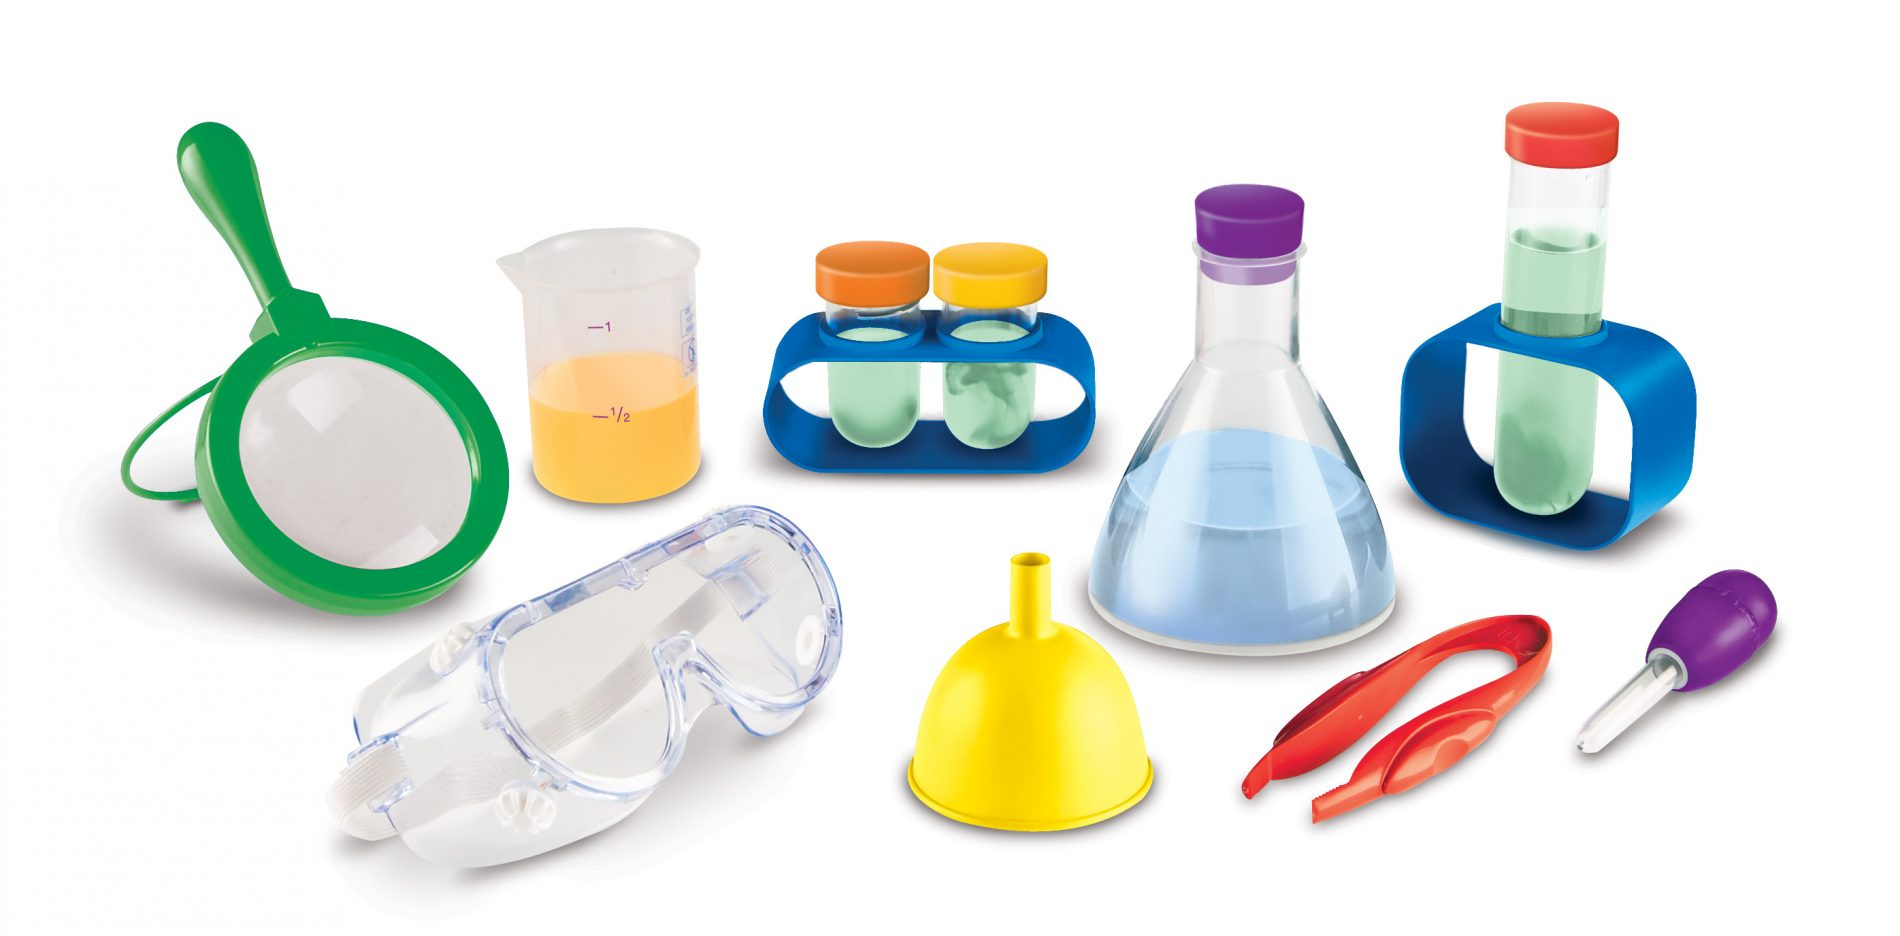 How To Use Real Science Tools For Little Scientist